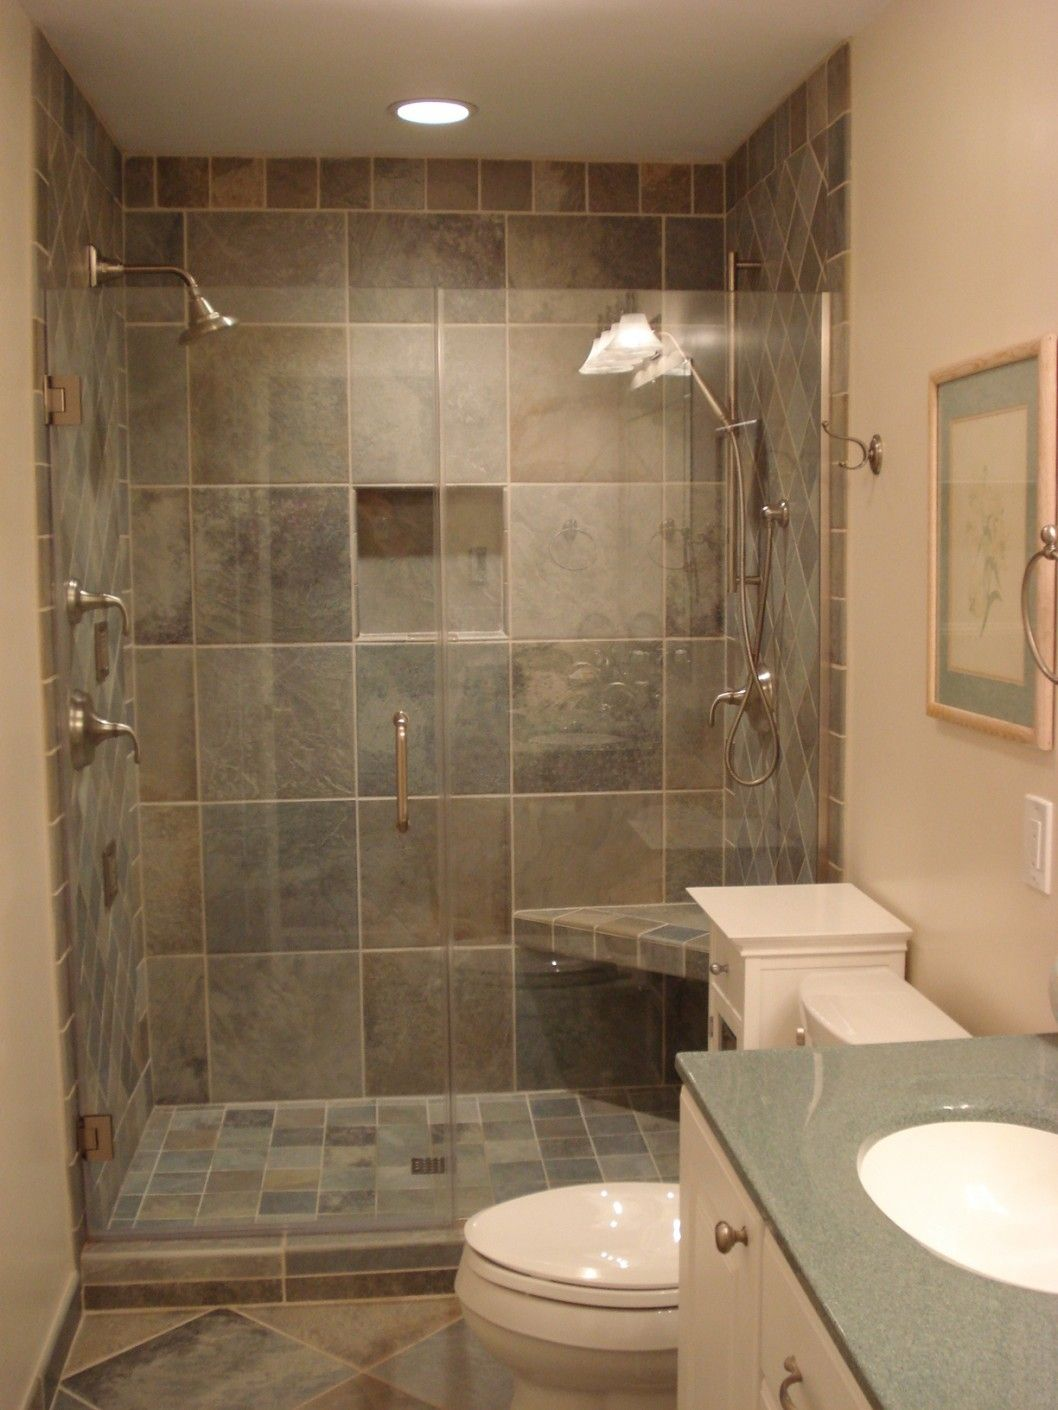 Best Of Ideas Remodel Bathroom Tub And How To Remodel My Bathroom Small Bathroom Makeover Bathroom Remodel Shower Bathroom Remodel Cost